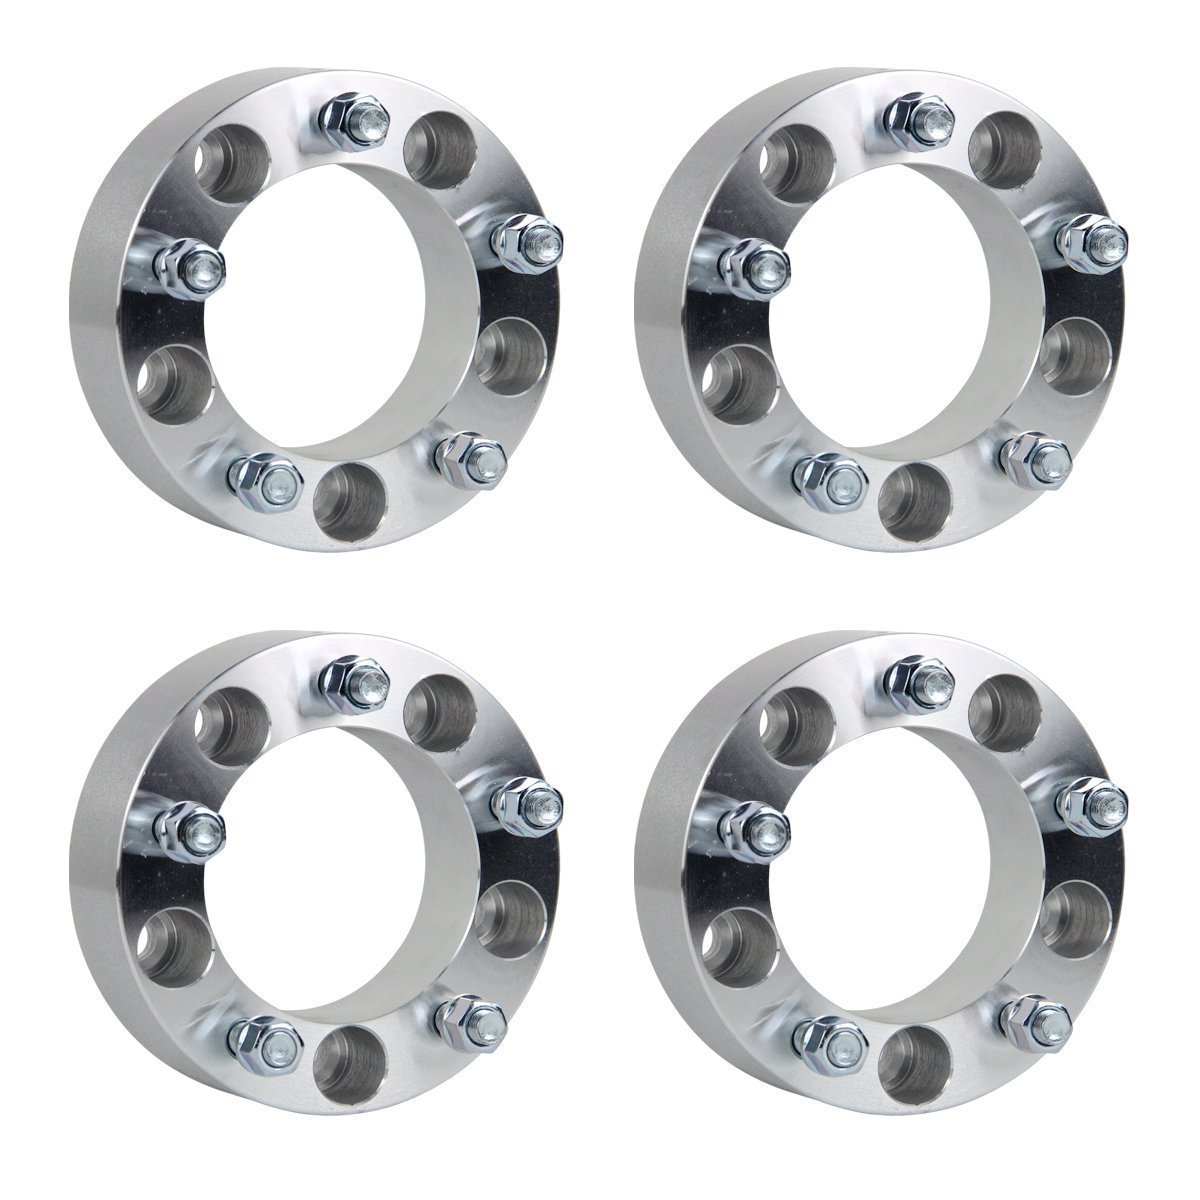 "RACPLUS 4pcs 2"" 5x5.5 to 5x5.5 (5x139.7 to 5x139.7) Wheel Spacers 1/2"" studs for Ford E150 Ford F150 Ford Bronco Dodge Ram 1500 Ramcharger Jeep CJ"